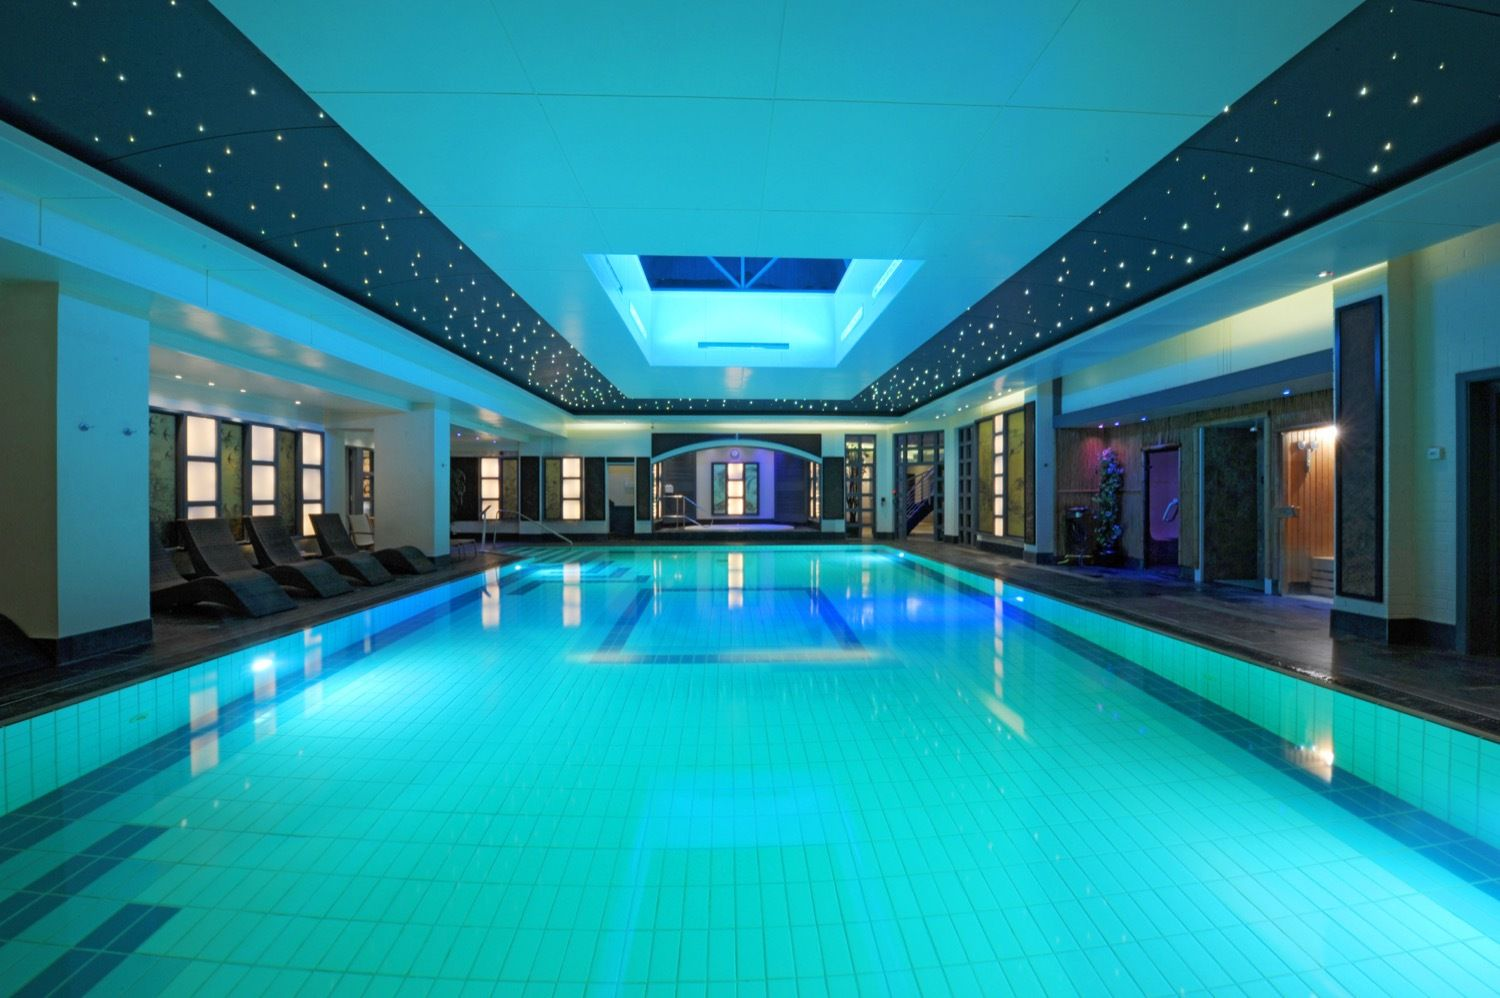 Senspa - Hotels in brockenhurst with swimming pools ...